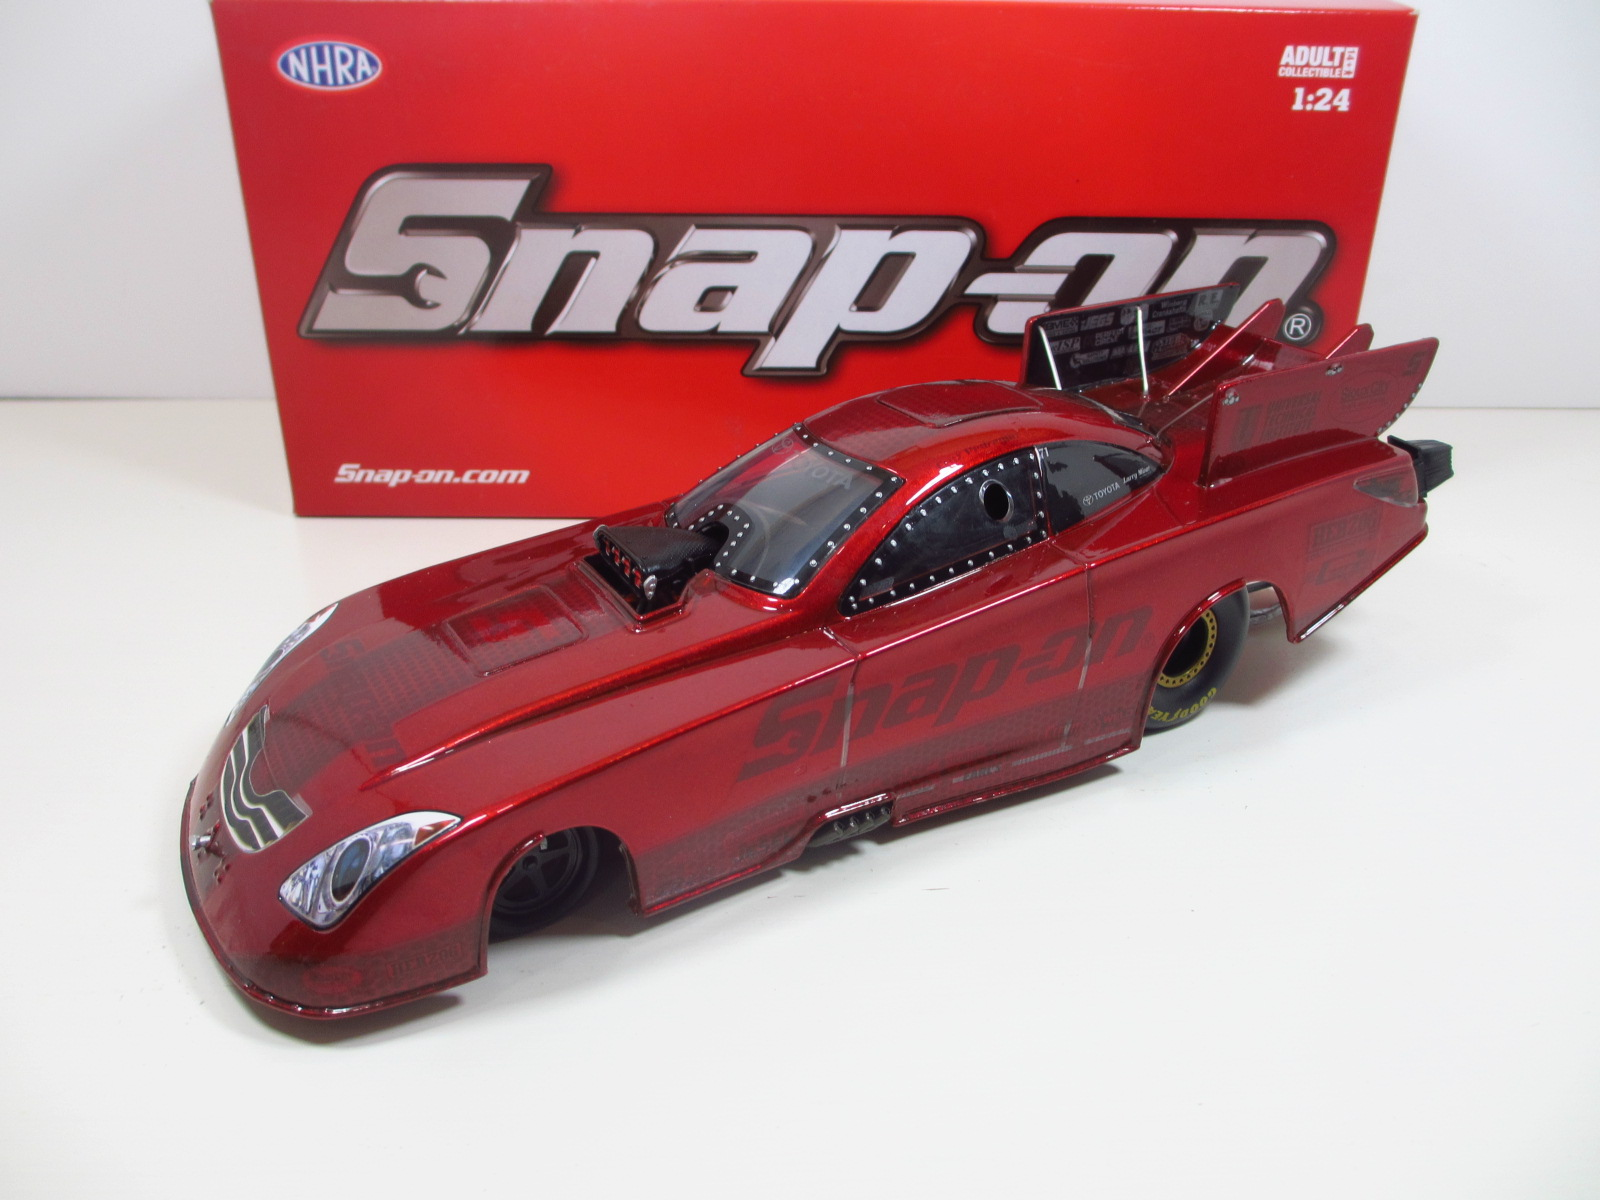 1/24  Auto World  2010  Toyota Camry  Cruz Pedregon  Snap-On  キャンディレッド 24-104